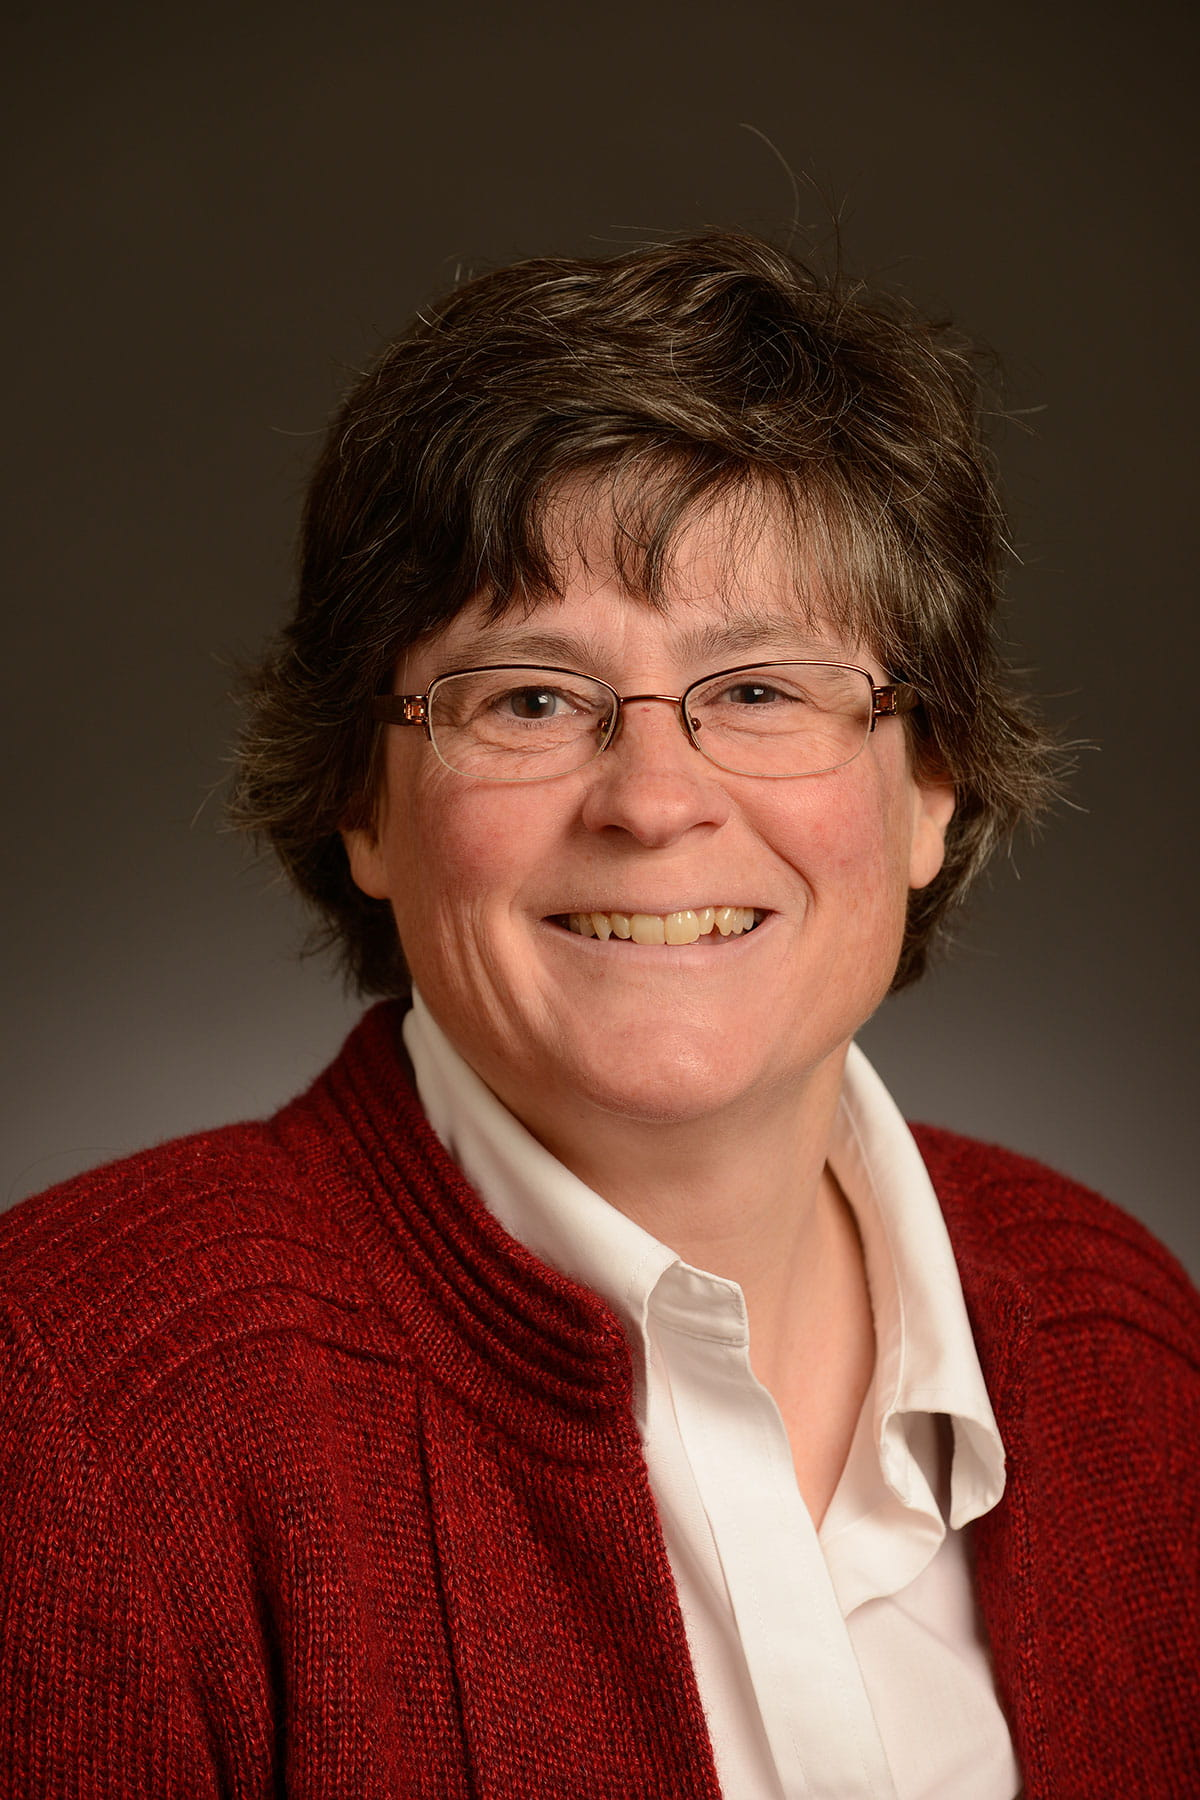 A photo of Susan Wiley.